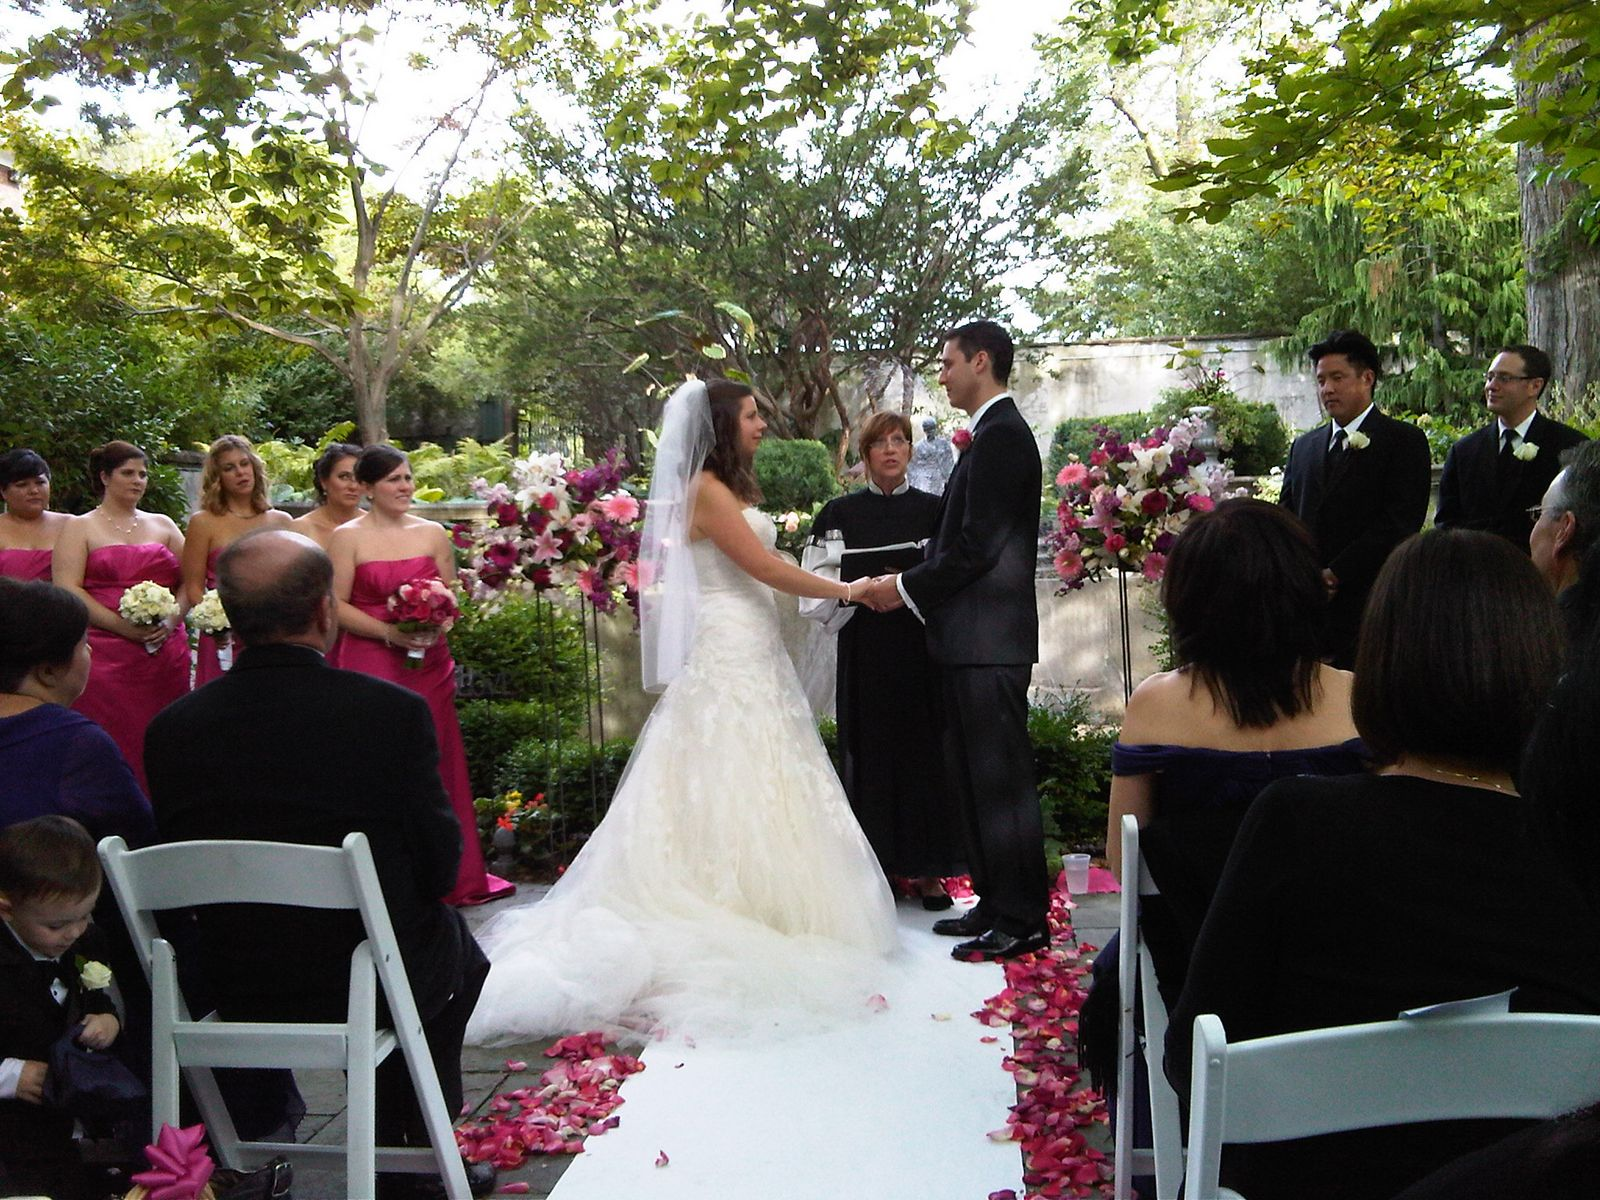 Wedding account make marriage one of the happiest moments in life plan for elegant wedding day junglespirit Image collections